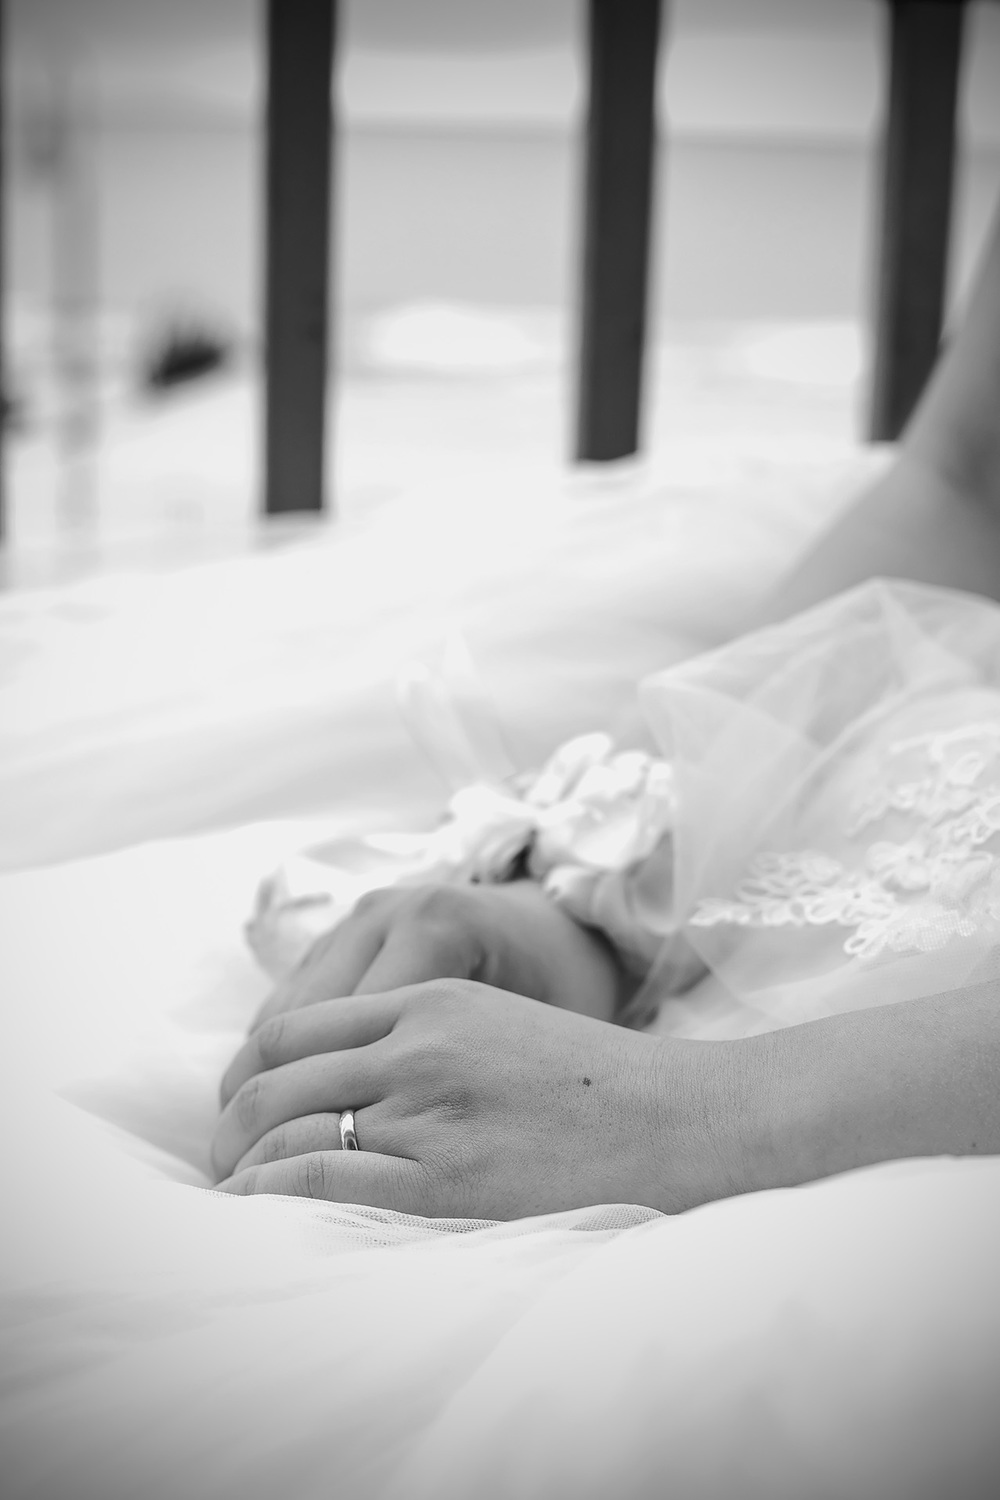 Black and White Film Style Bridal Preparation hands photo 8